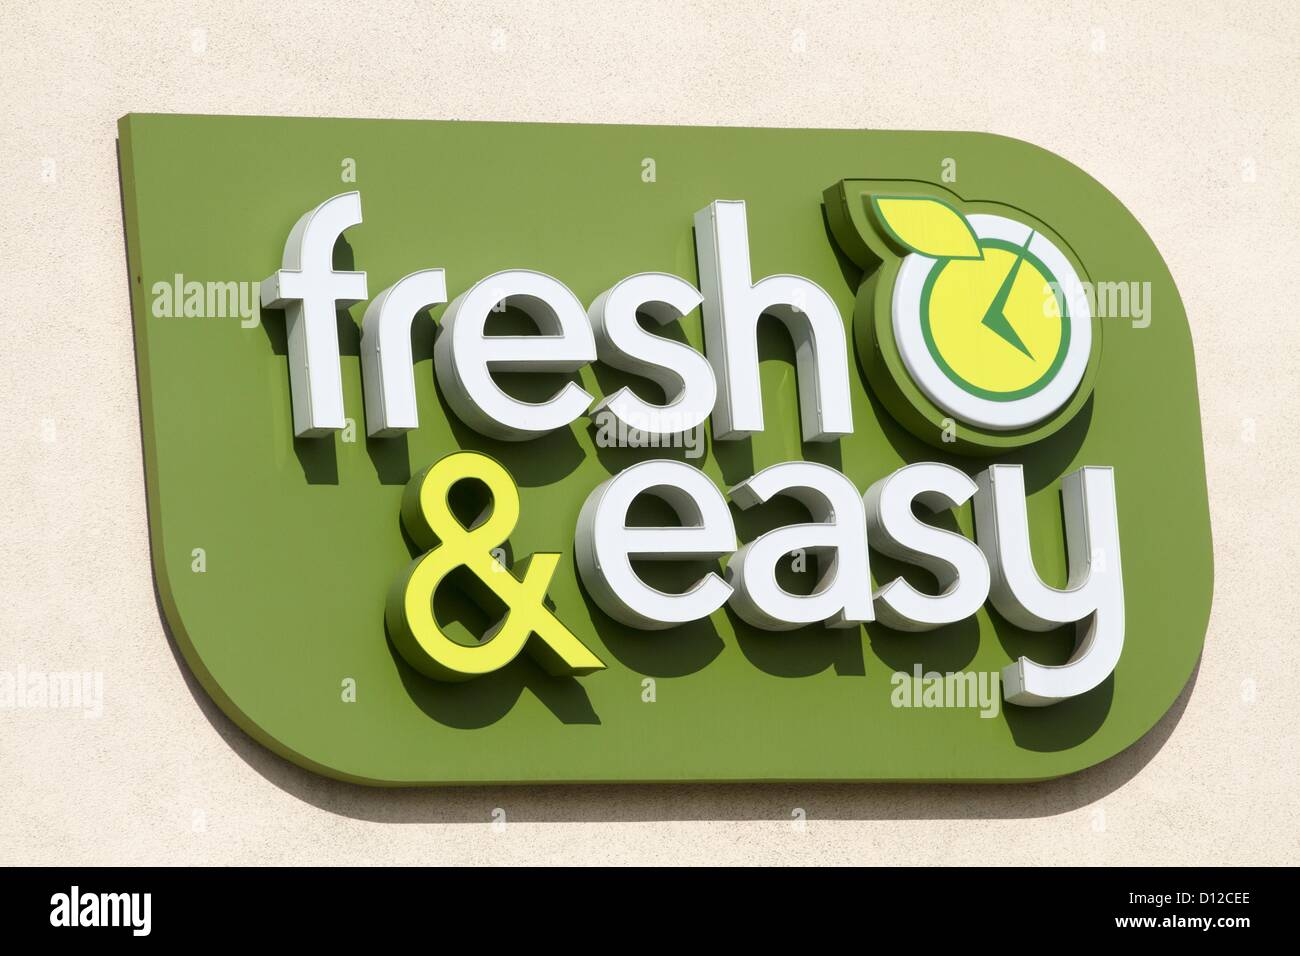 Dec. 5, 2012 - Los Angeles, California, U.S. - A Fresh & Easy supermarket sign is seen on Wednesday. Tesco, - Stock Image